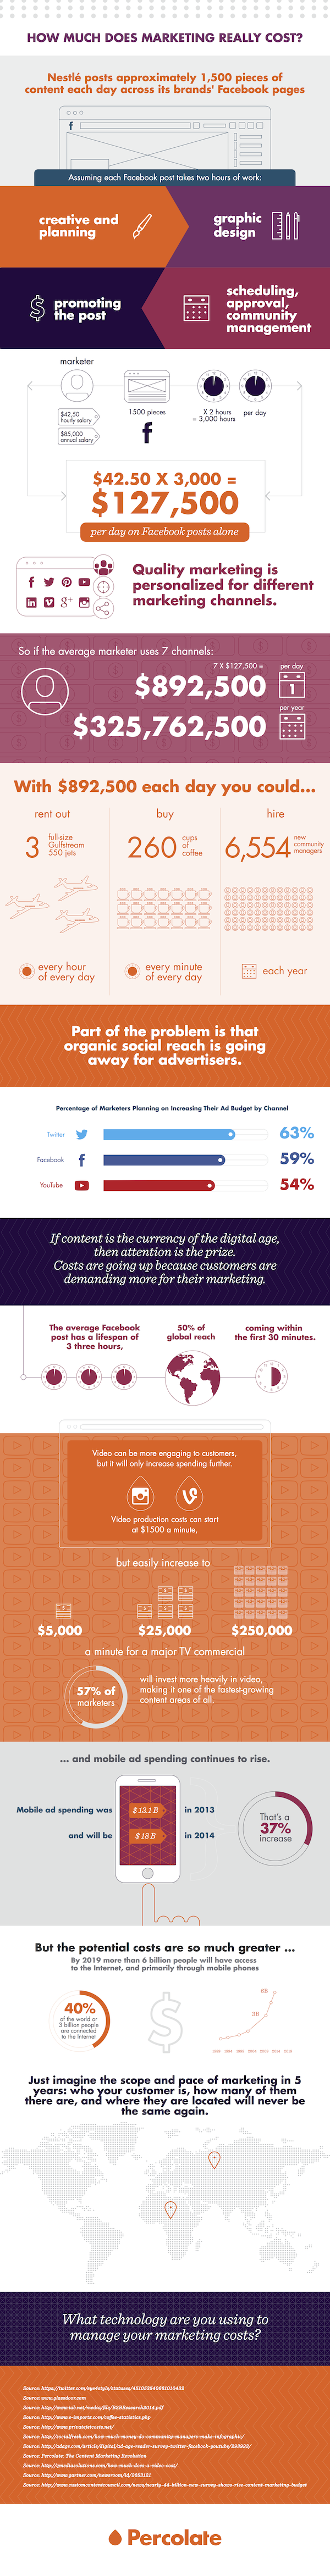 How much does marketing really cost? #Infographic